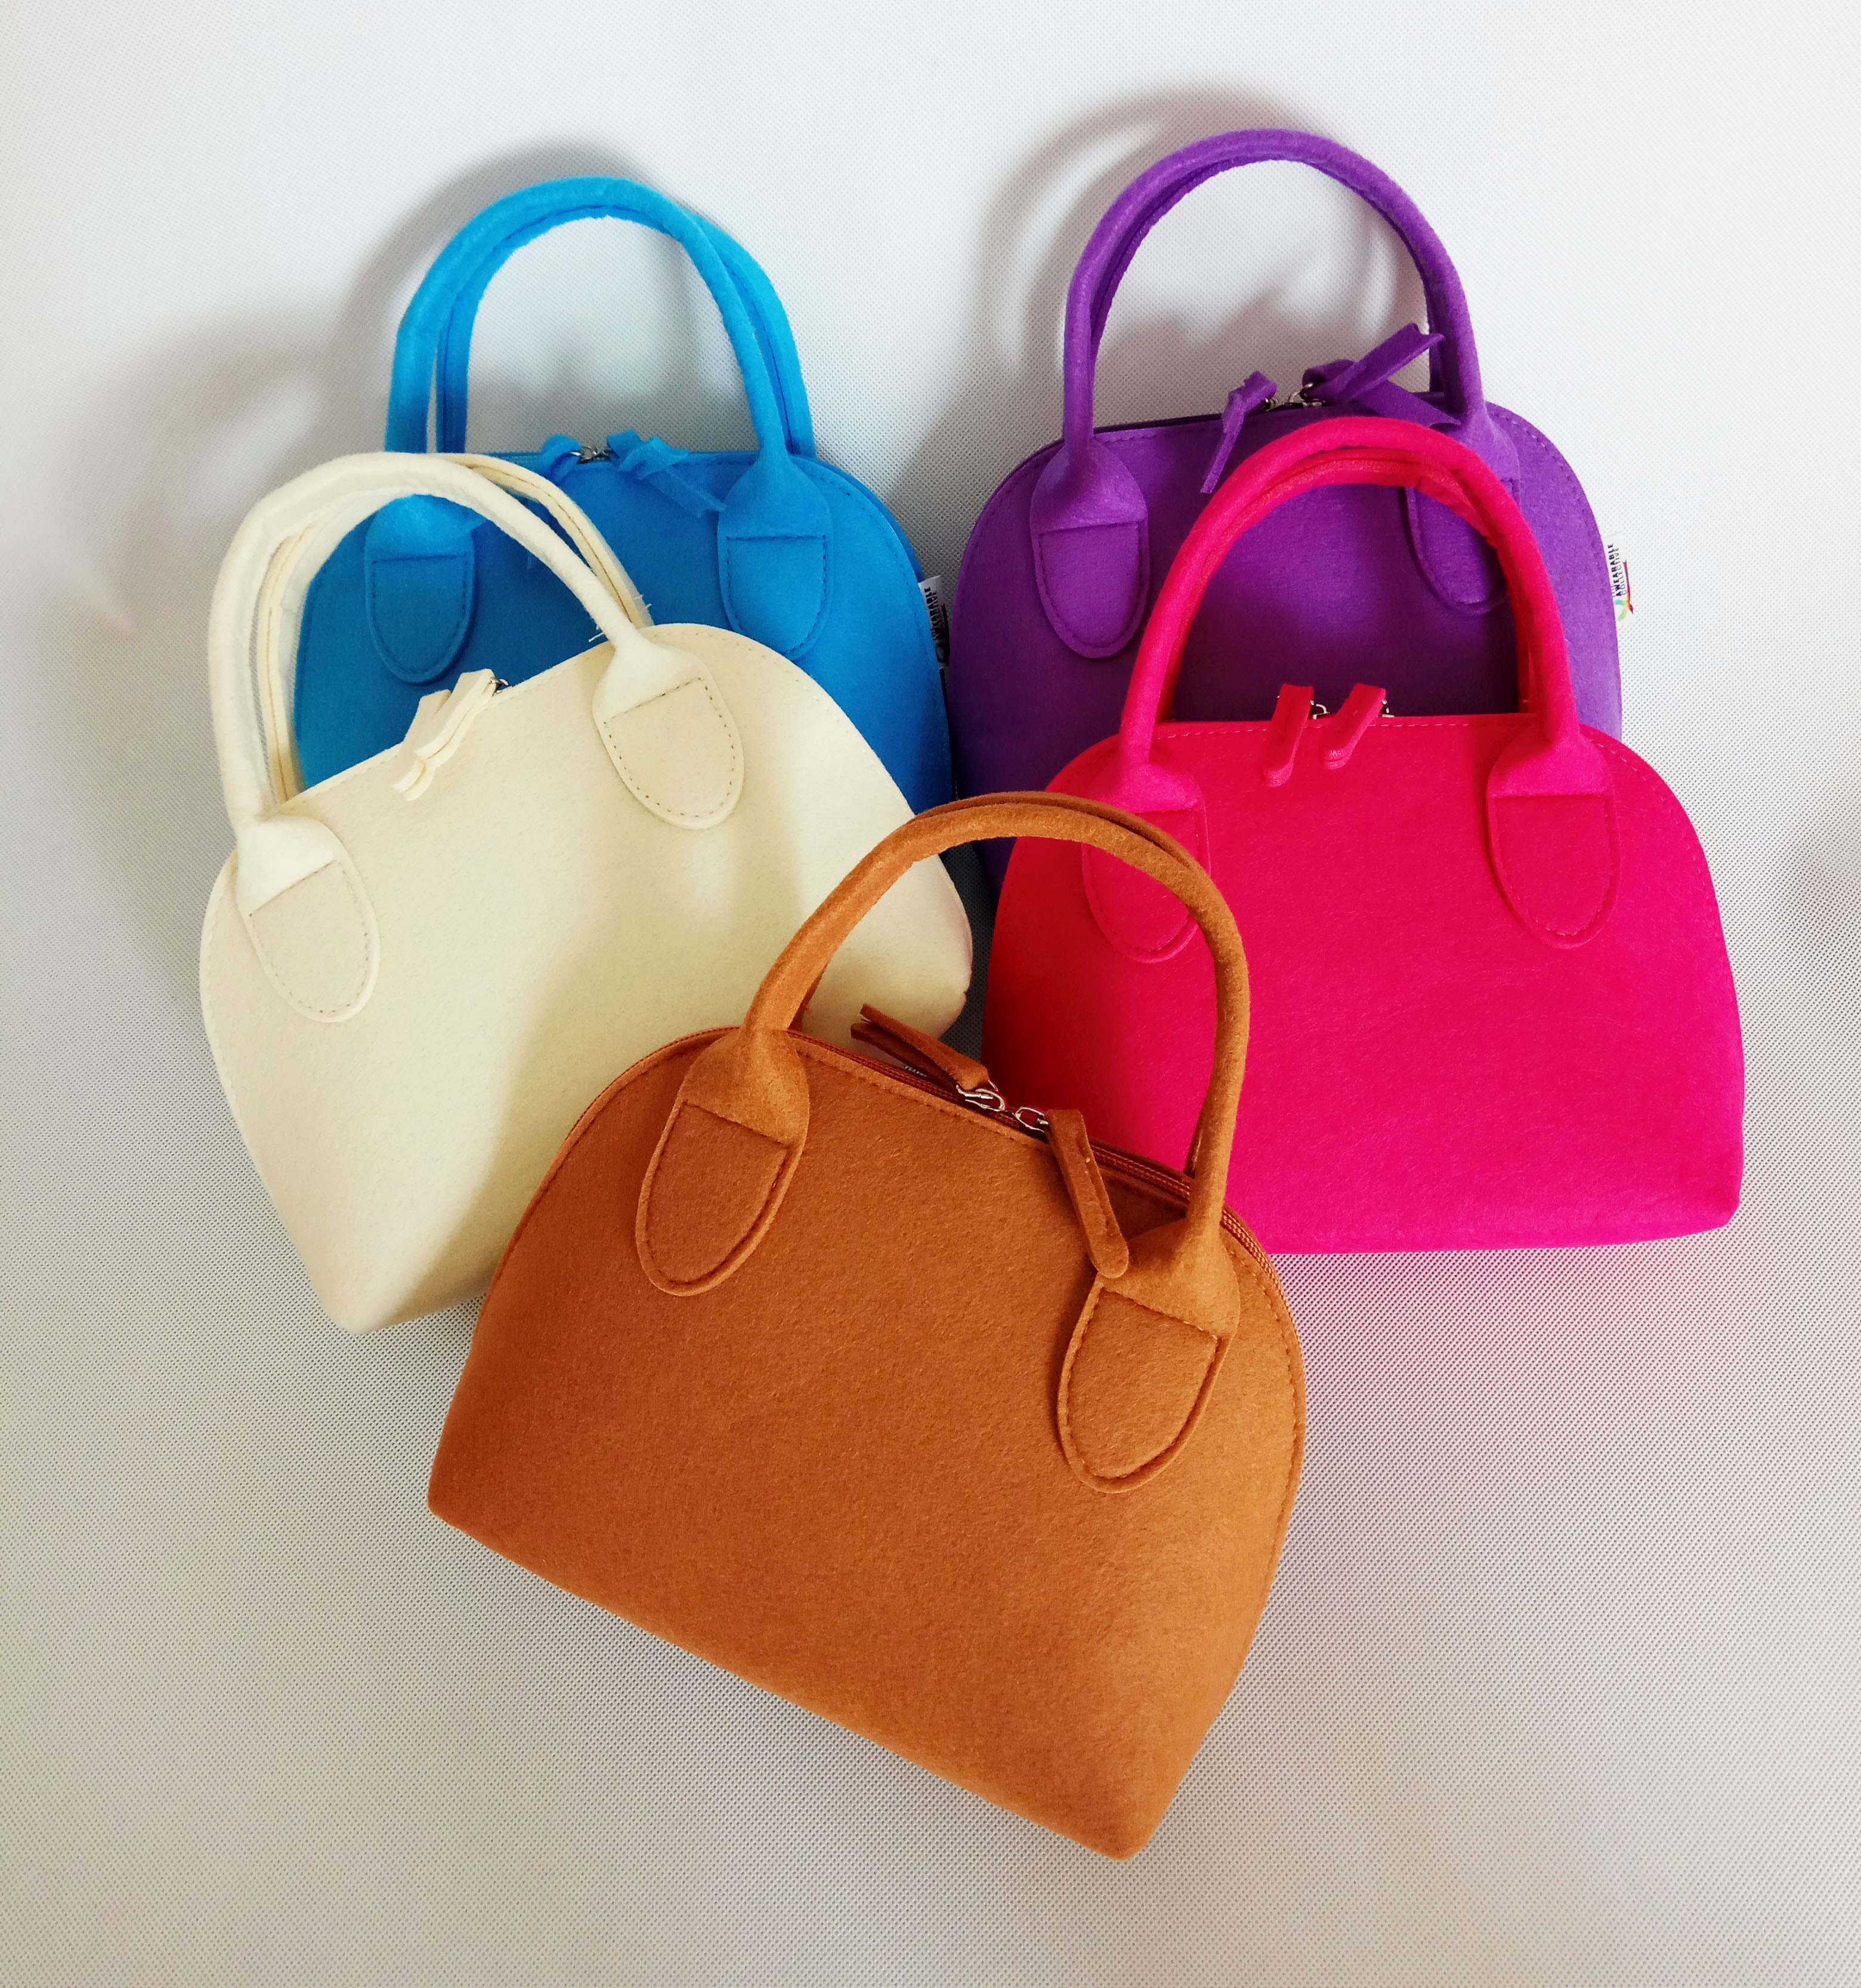 high quality new fashion 2020 custom non-woven felt hand bags women handbag manufacturer in China color size logo OEM